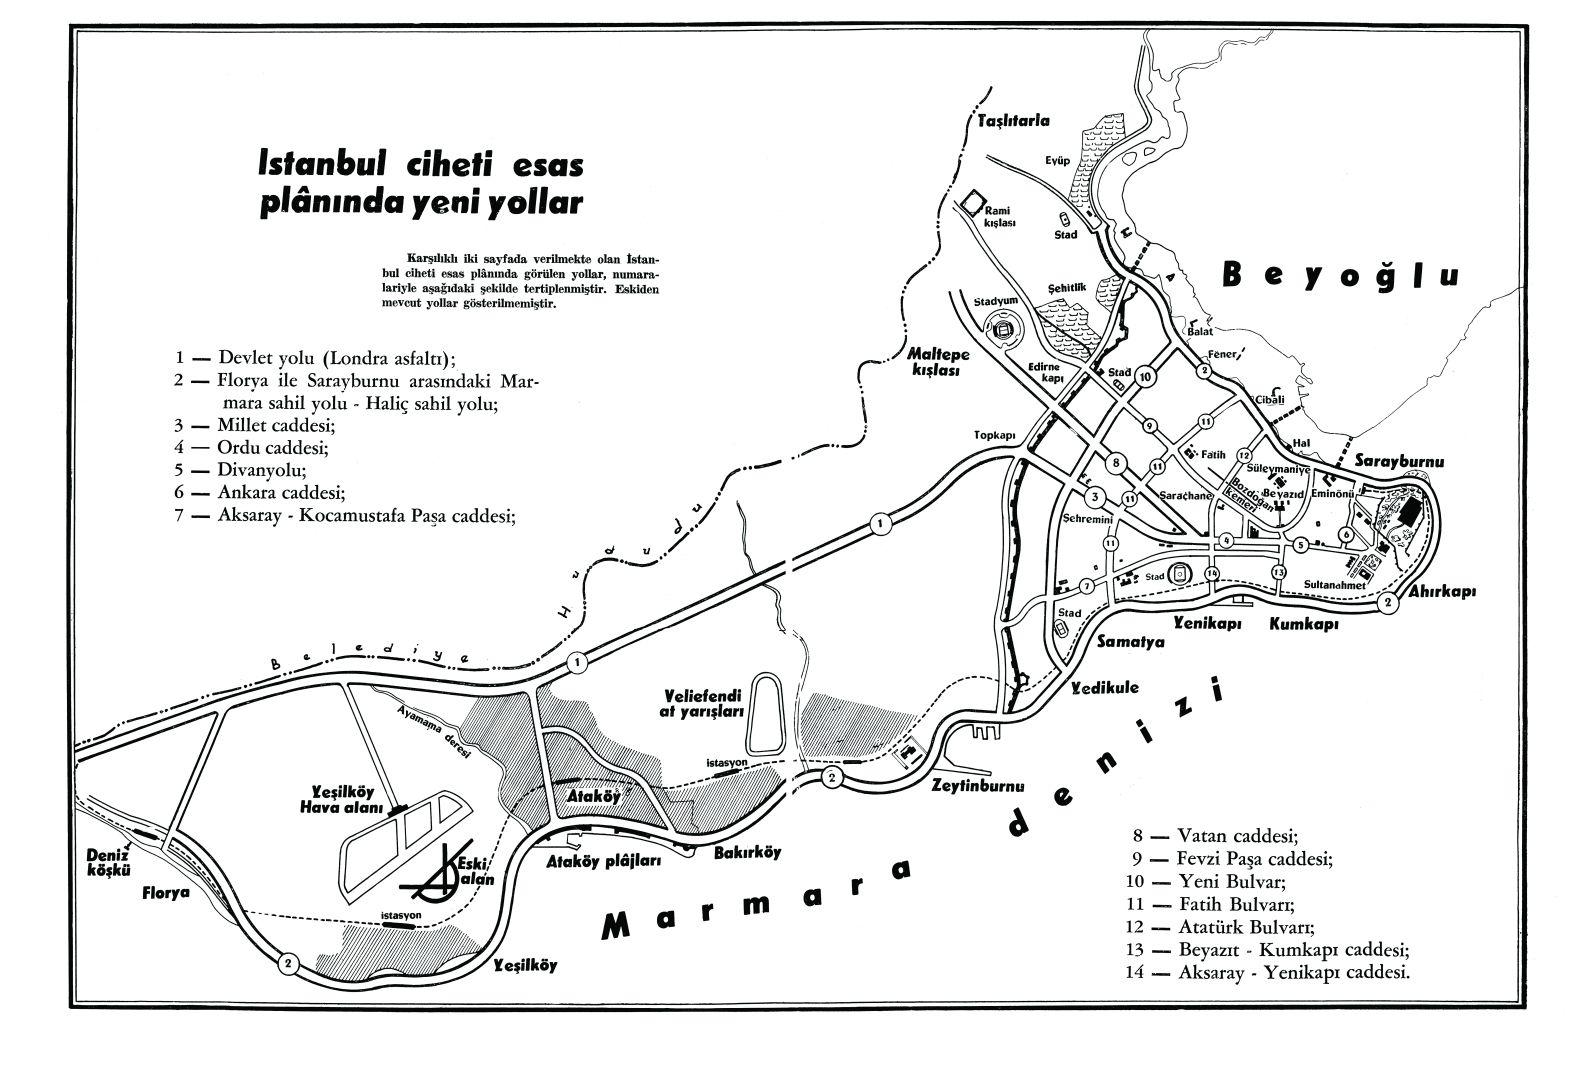 24- New Road Plan of Istanbul during the period of Adnan Menderes (<em>İstanbul'un Kitabı</em>)